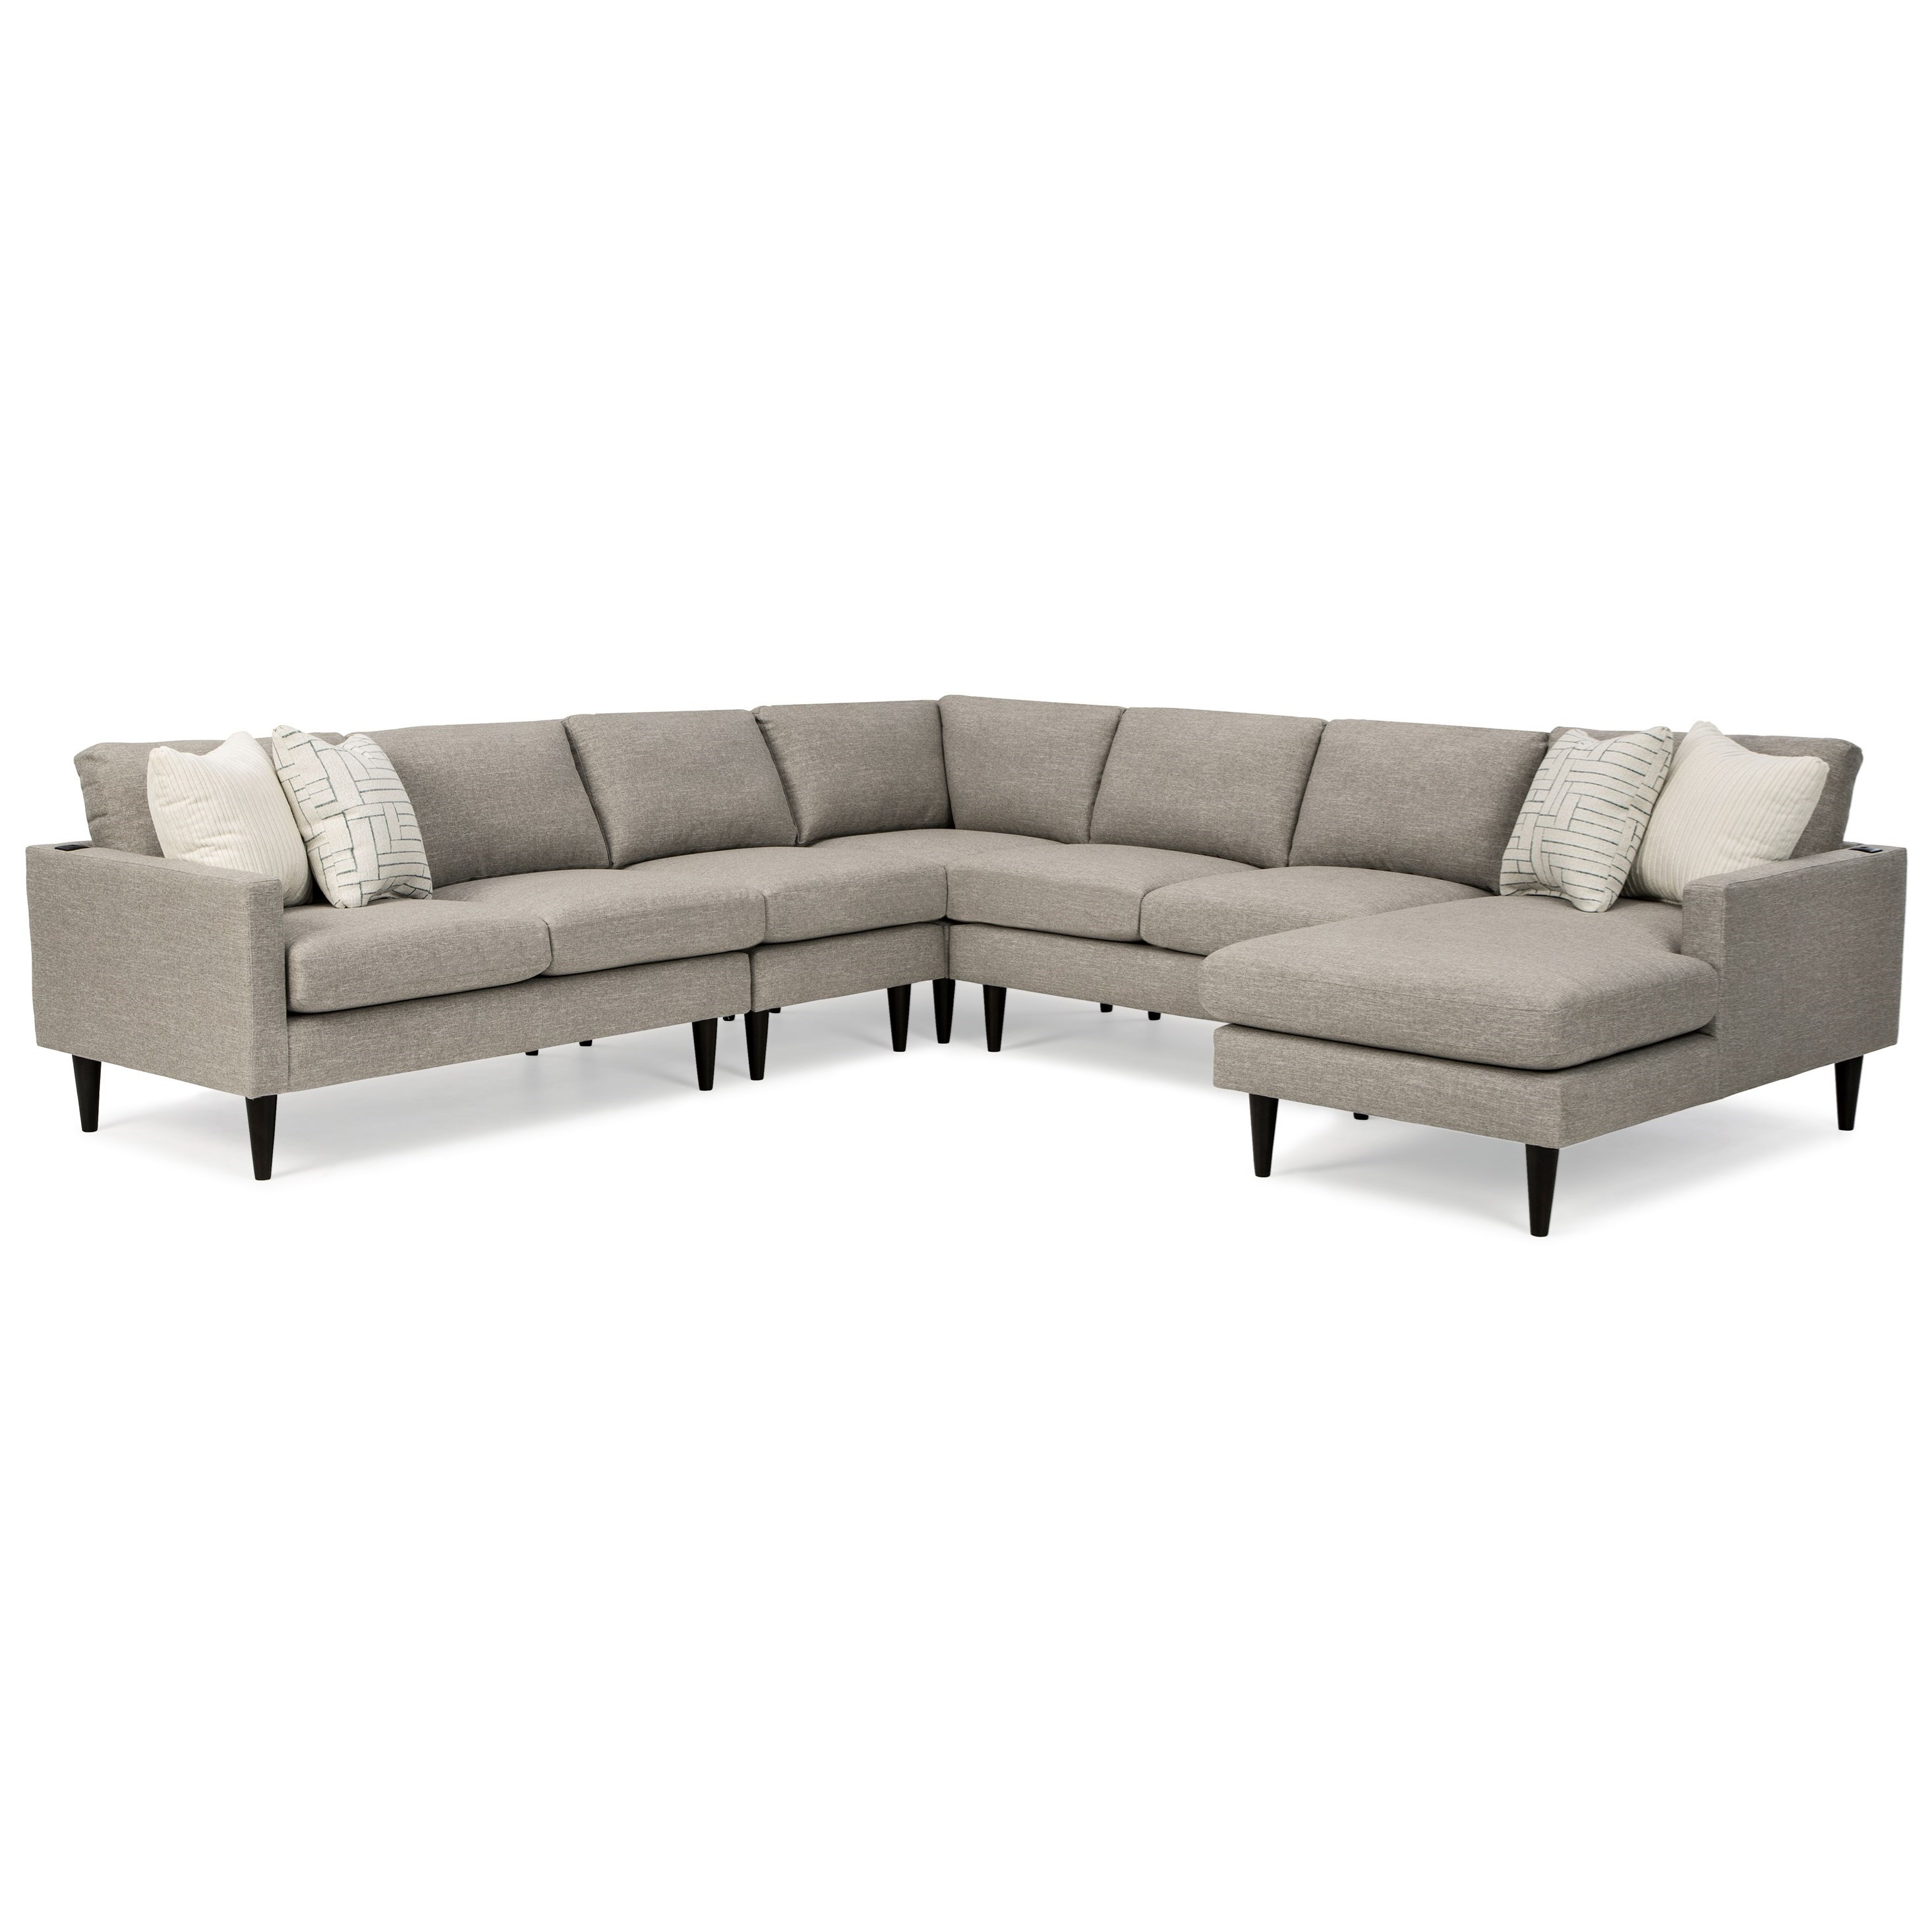 Trafton 6-Seat Sectional Sofa w/ RAF Chaise by Best Home Furnishings at Mueller Furniture